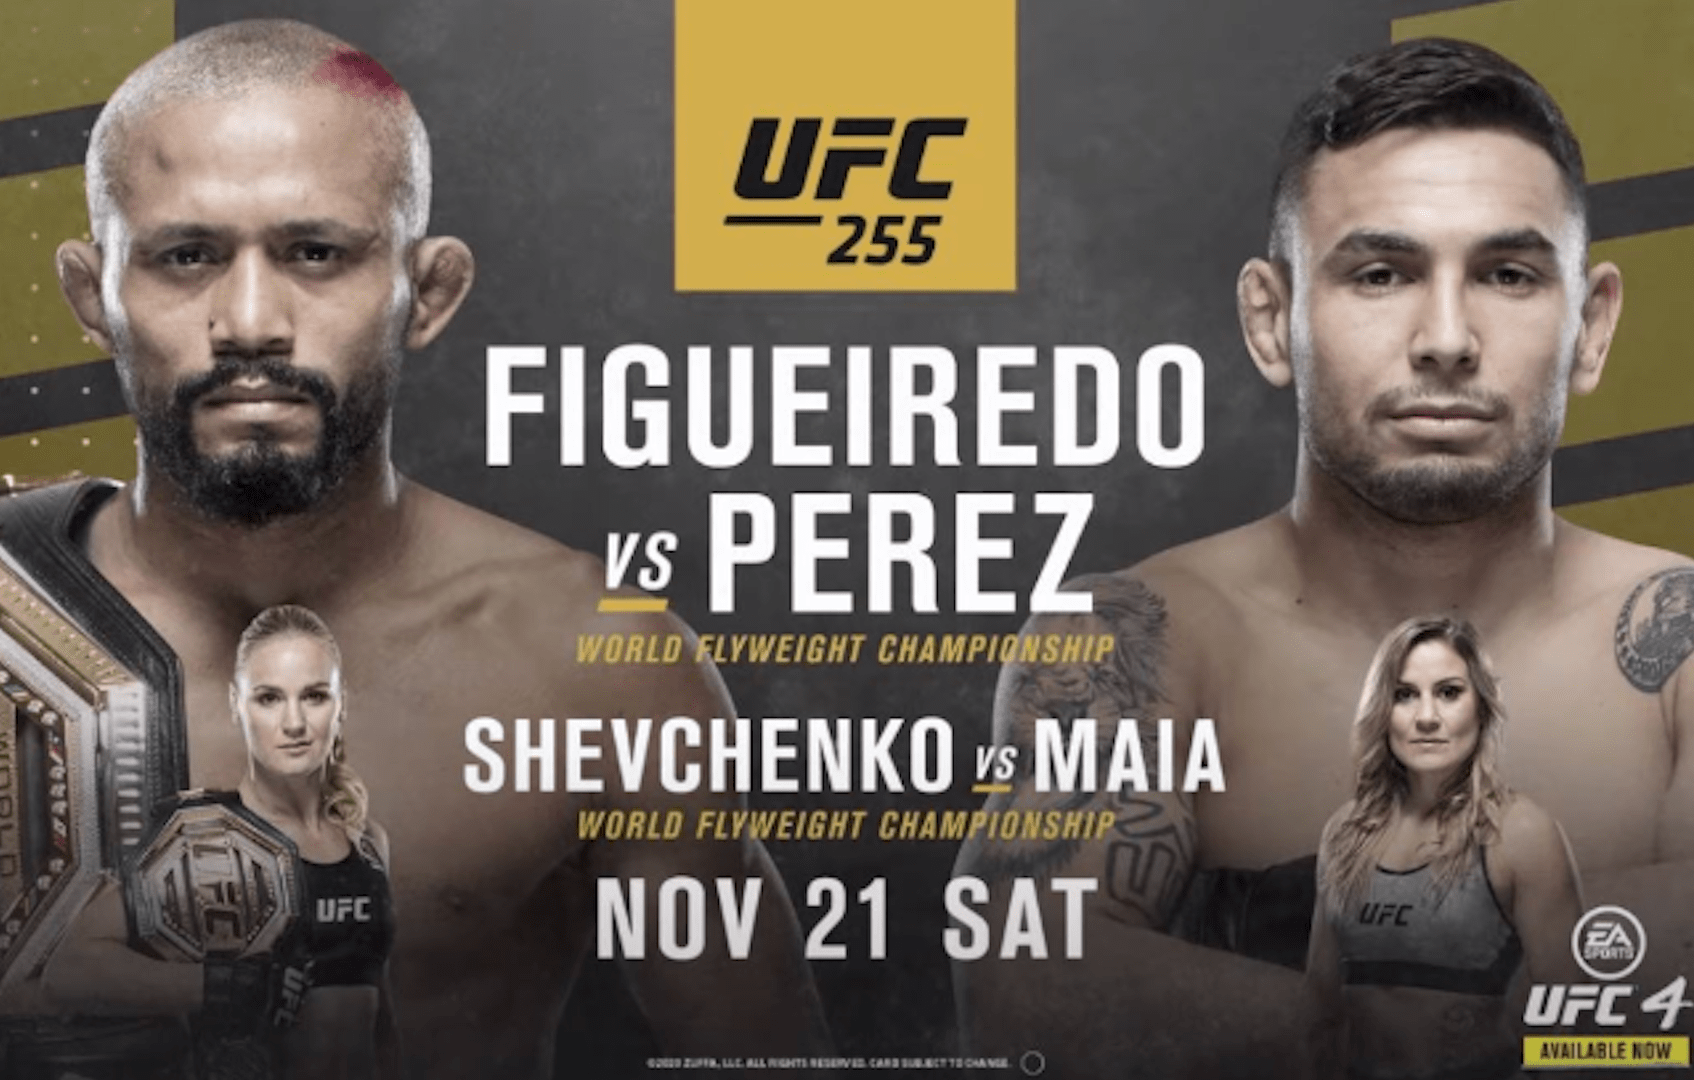 UFC 255: Figueiredo vs Perez Results And Post Fight Videos